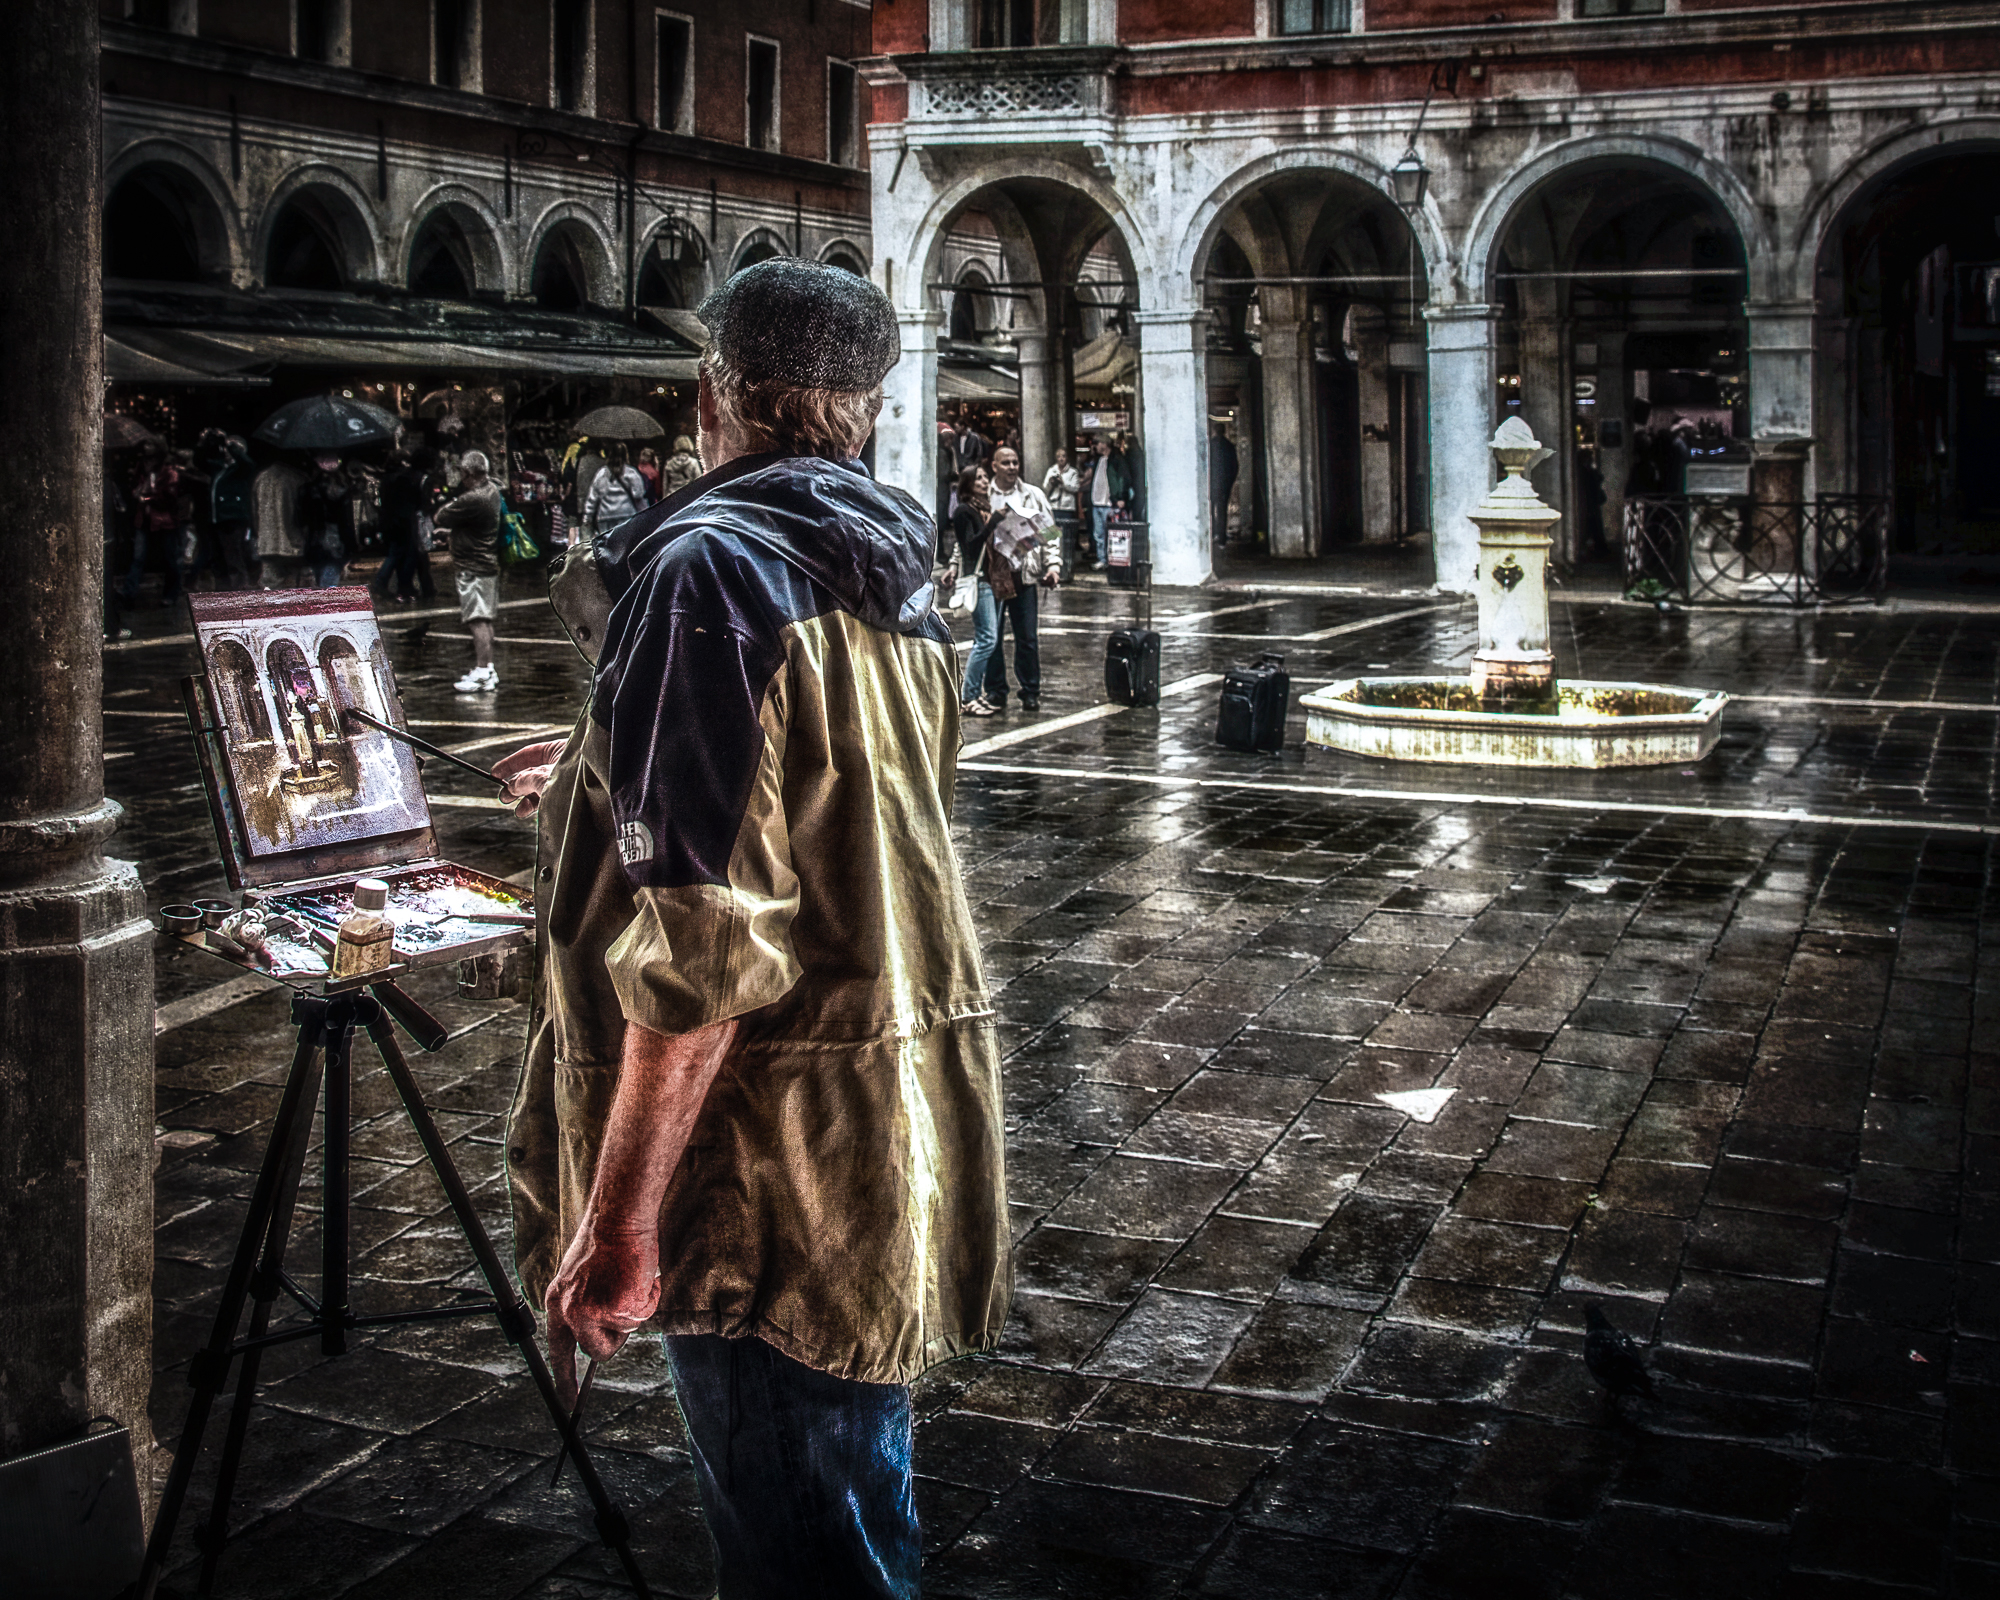 An artist at work...the virtual and the real